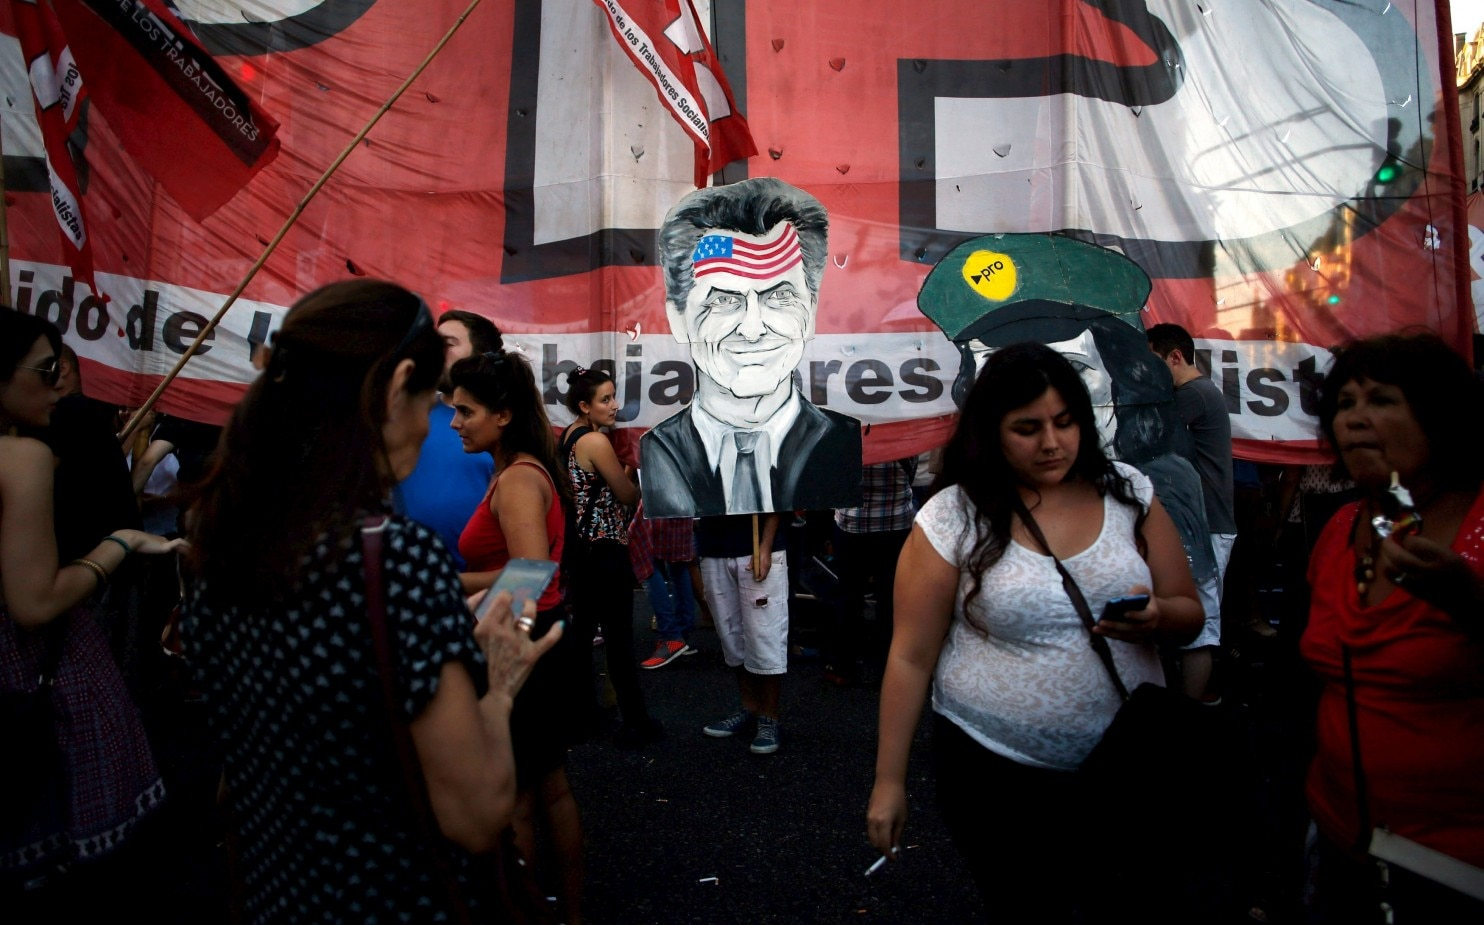 Argentina: Right wins, but radical left makes gains ...